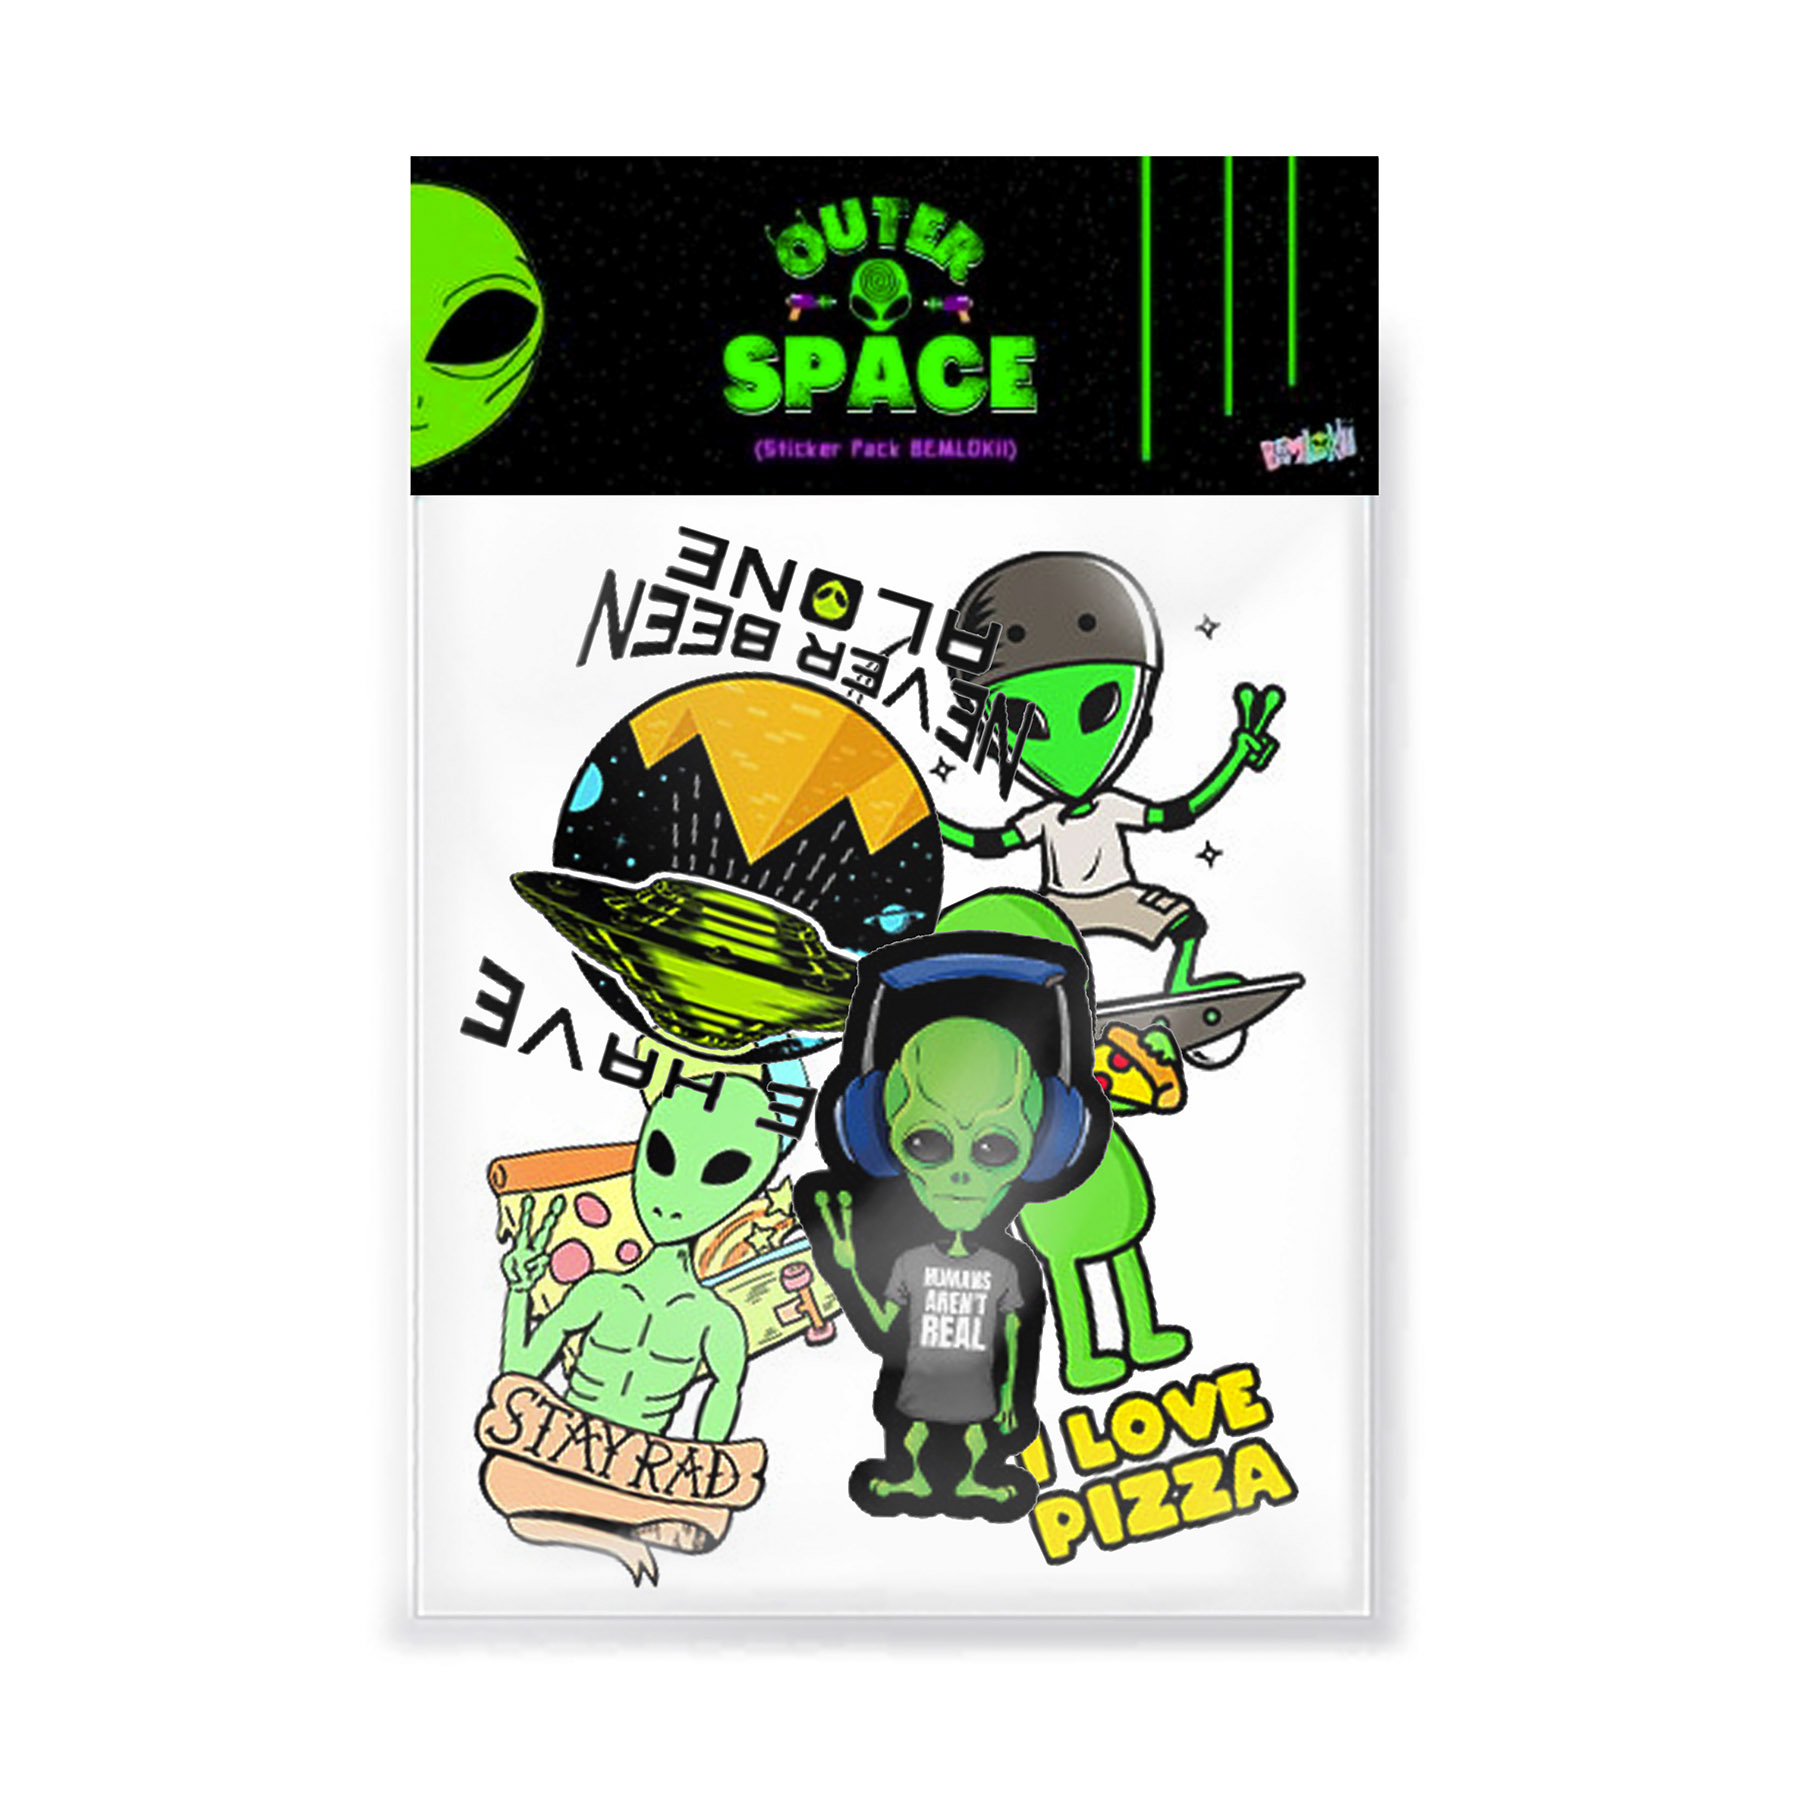 Stickers Pack vol. 2